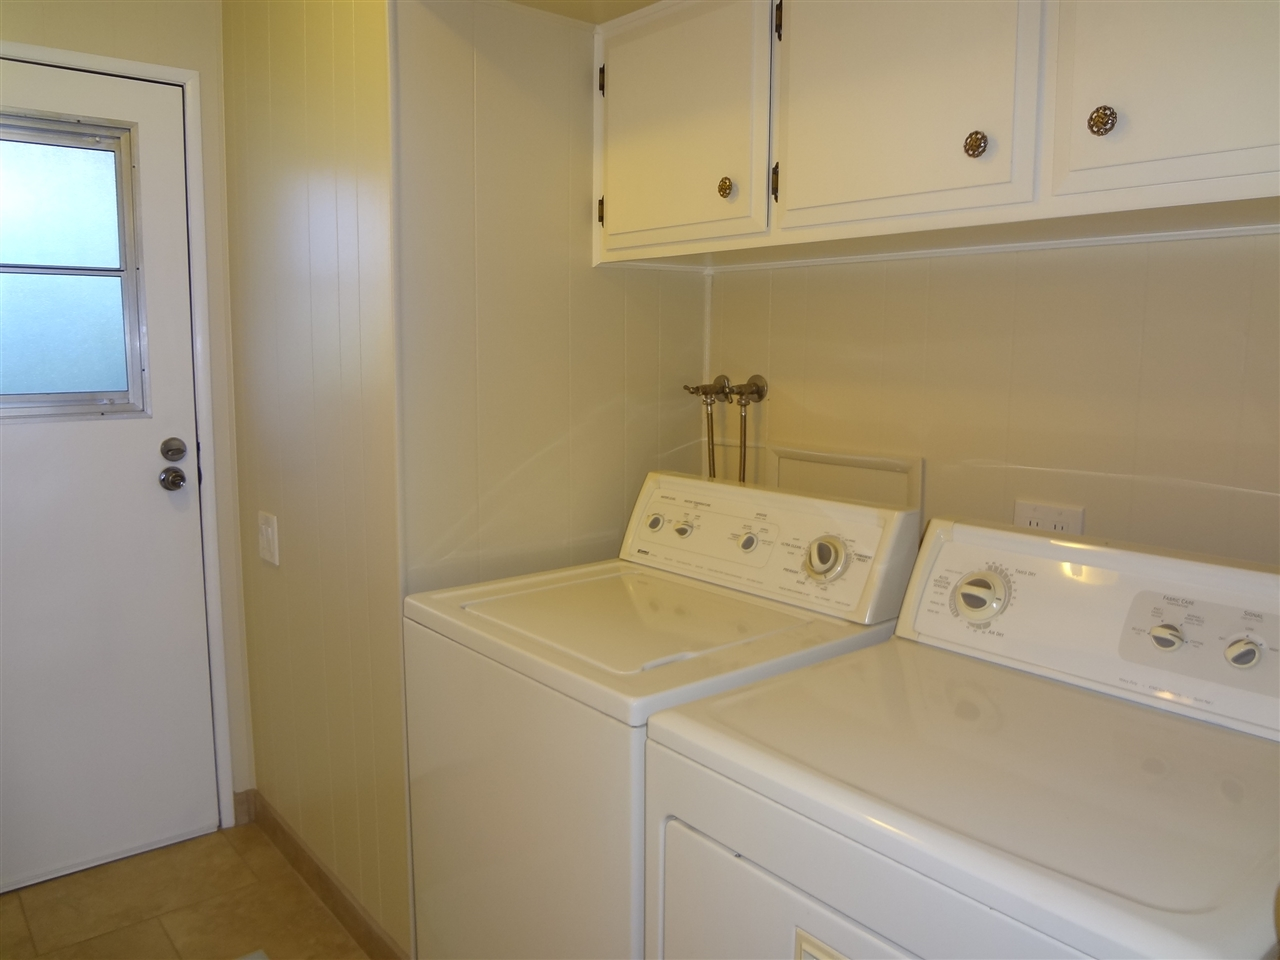 Photo 13: OUT OF AREA Manufactured Home for sale : 2 bedrooms : 133 Mira Del Sur in San Clemente